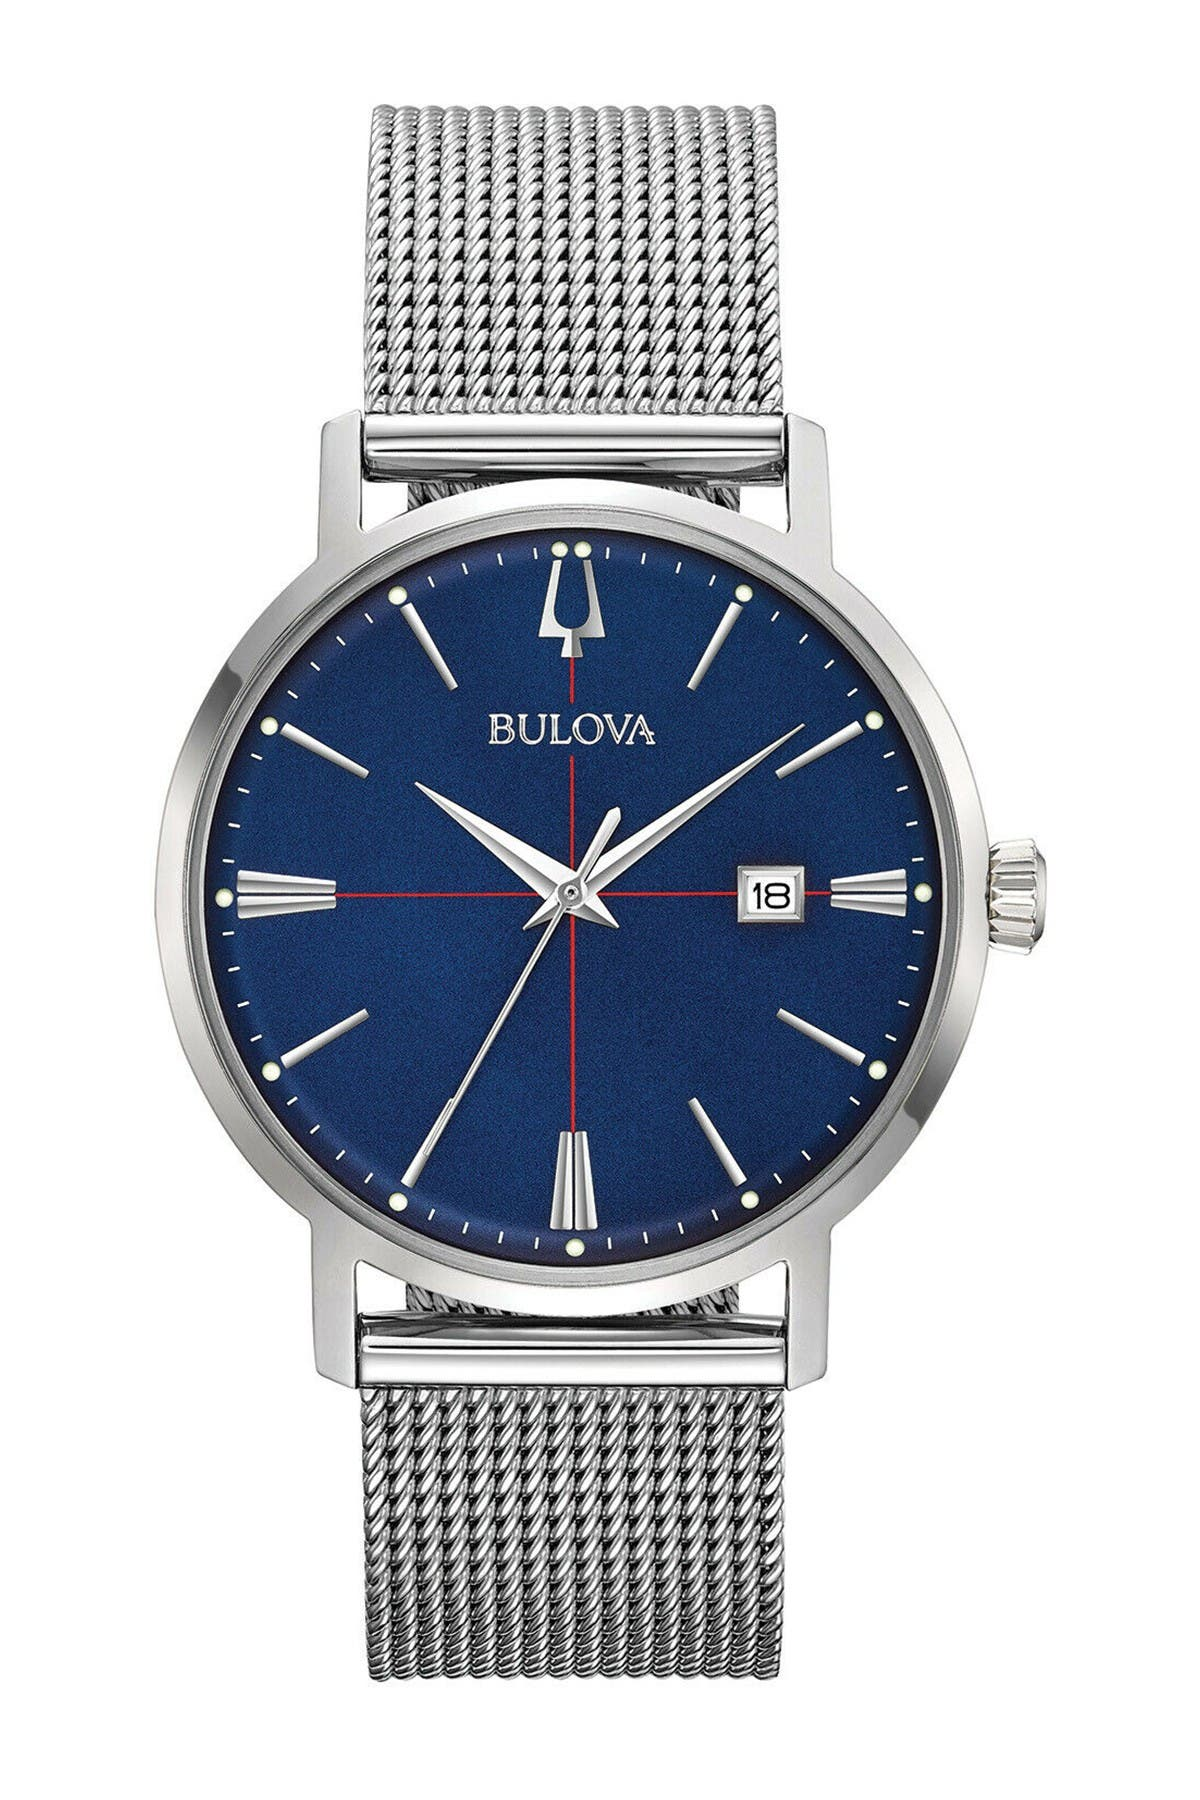 Image of Bulova Men's AeroJet Watch, 39mm